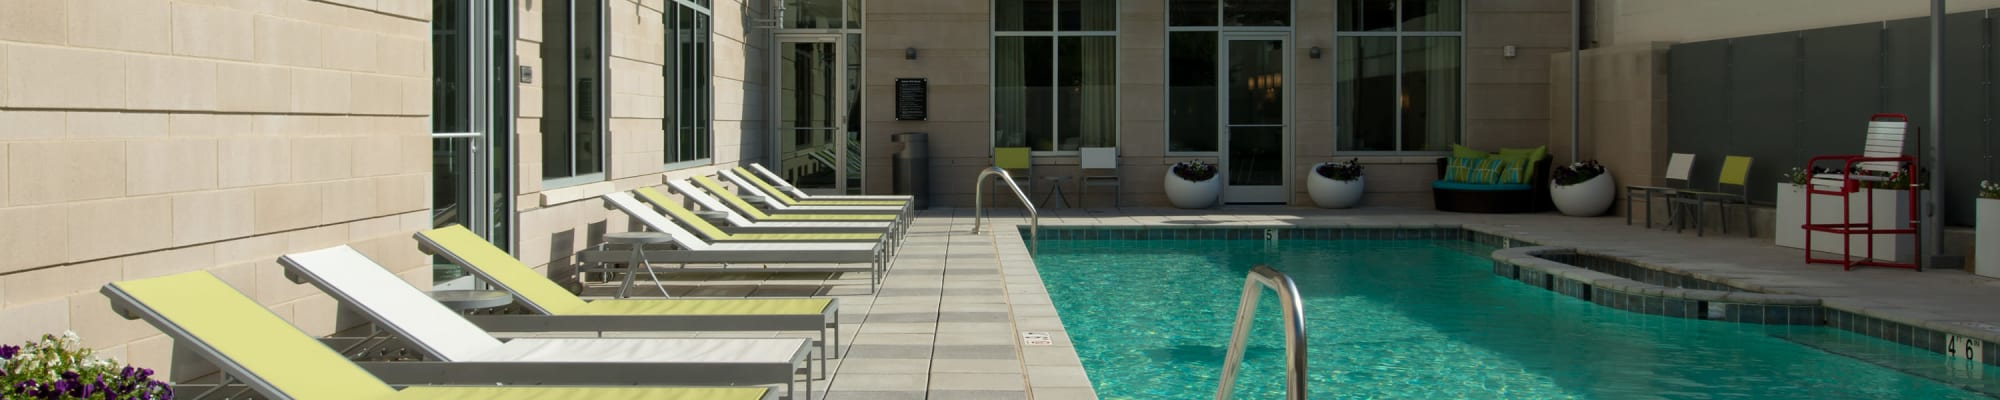 Amenities at Solaire 1150 Ripley in Silver Spring, Maryland